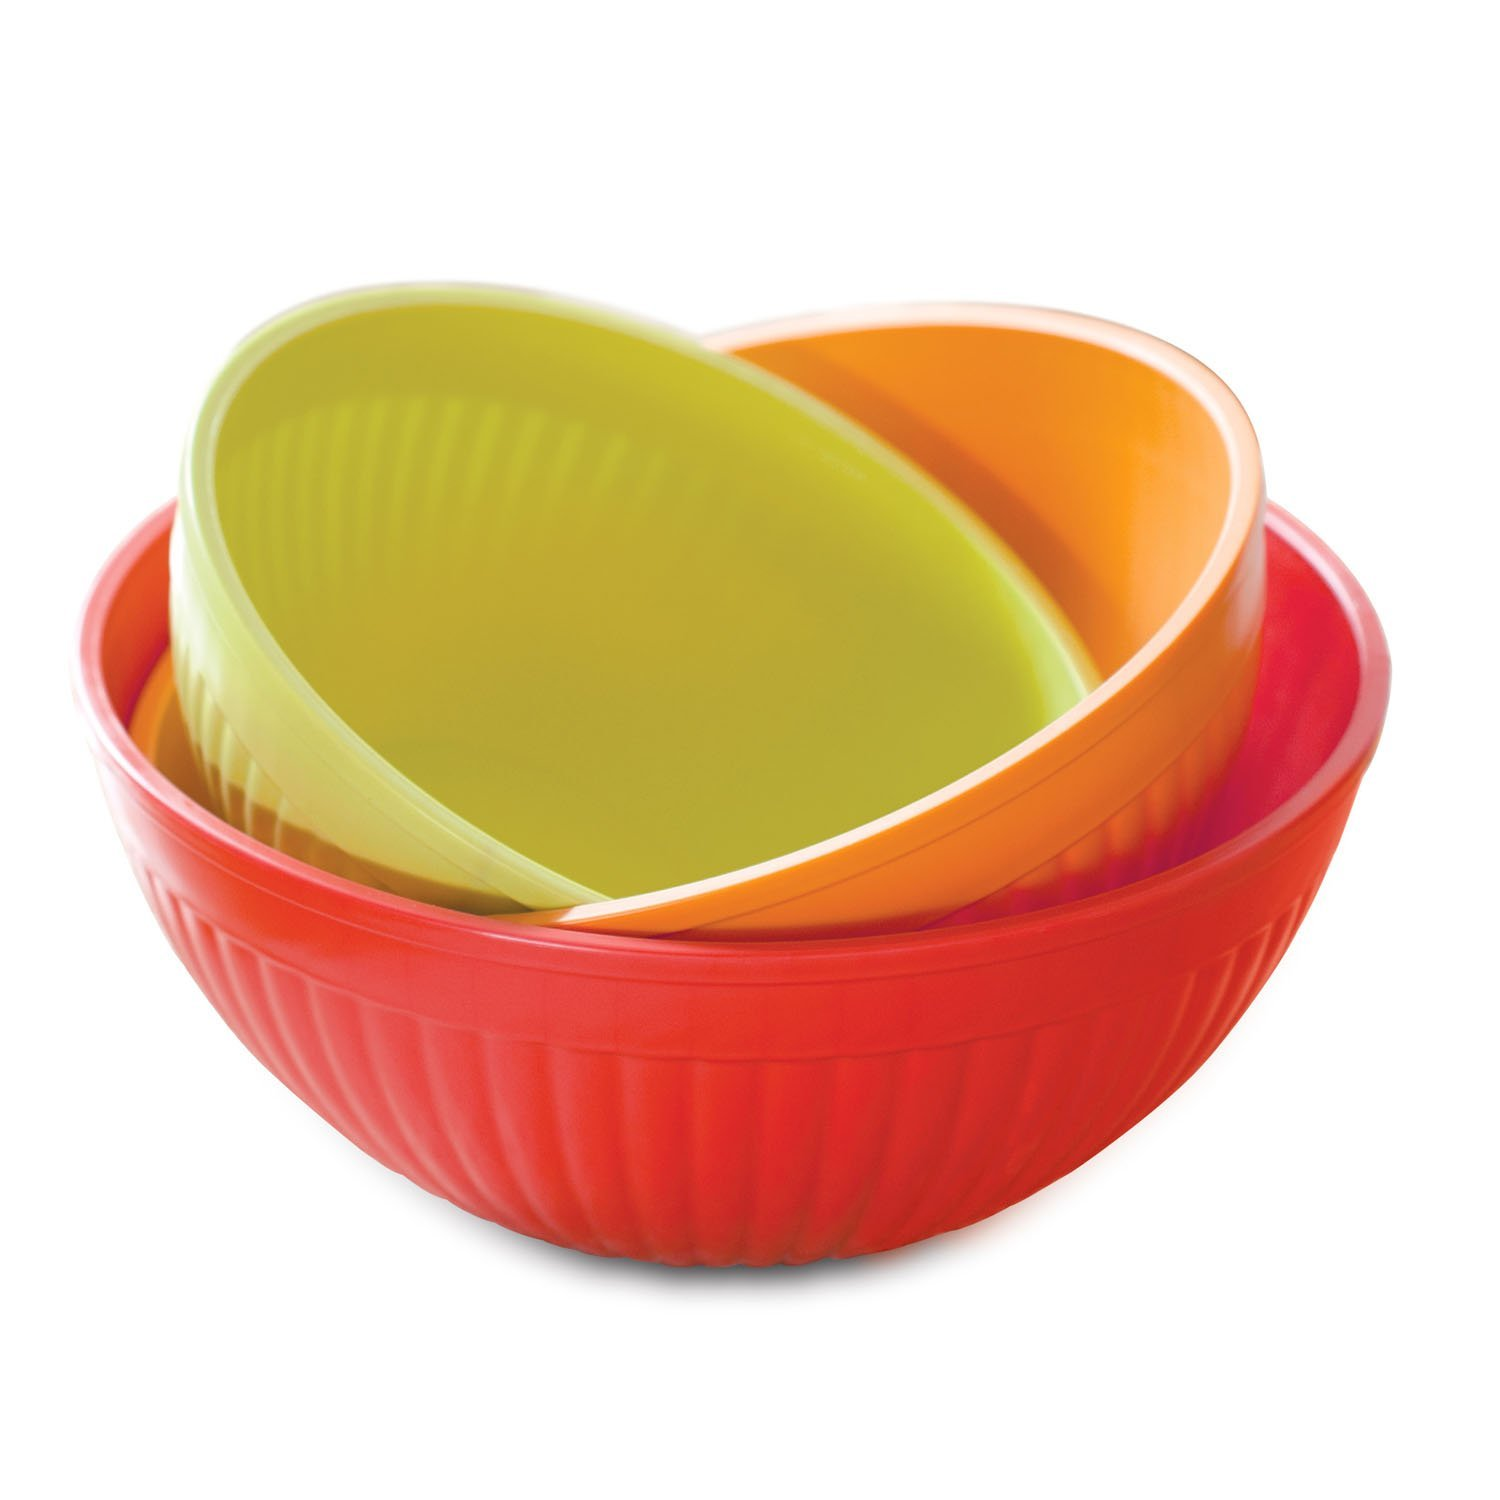 1500x1500 Nordic Ware Prep And Serve Mixing Bowl Set, 3 Piece